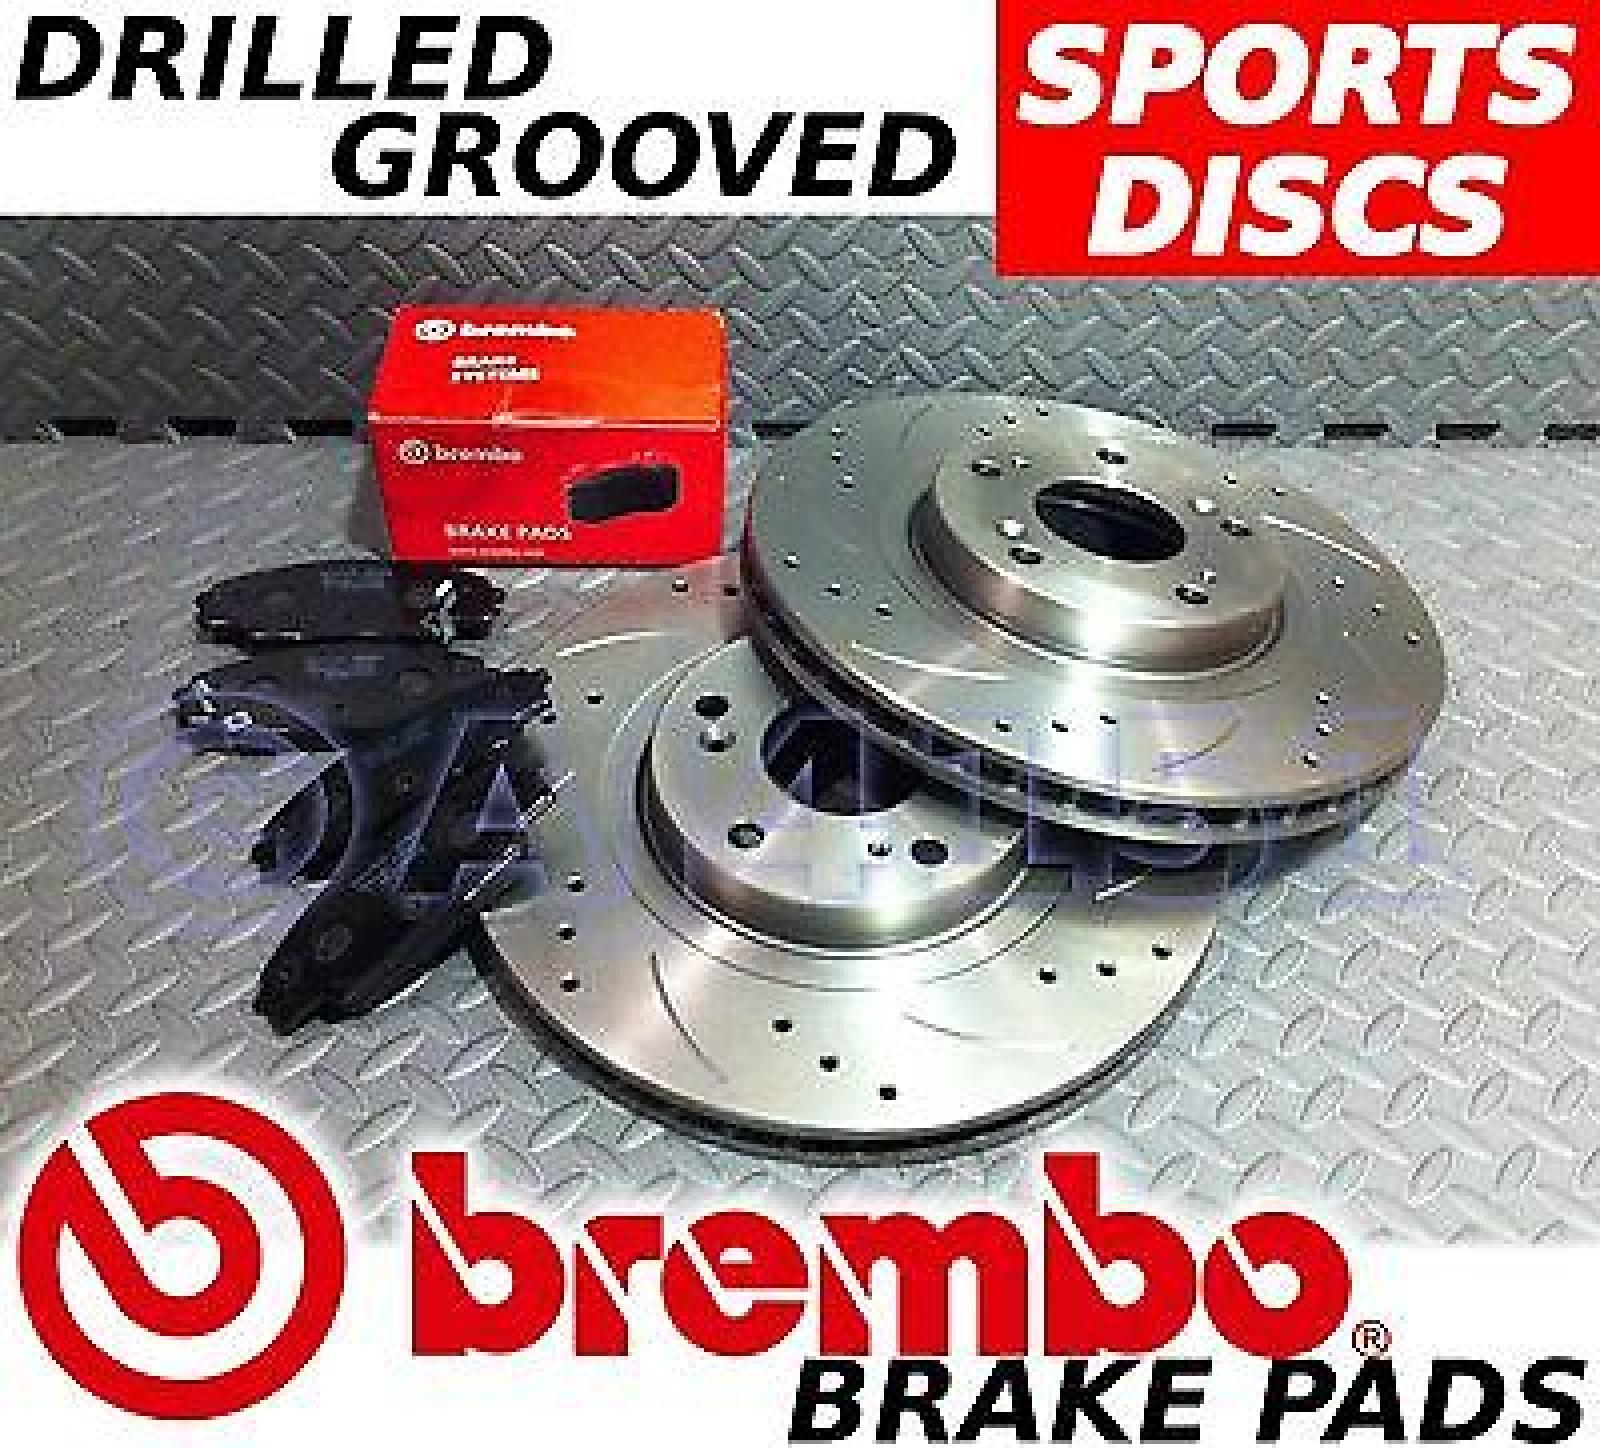 honda civic type r fn2 07 11 drilled grooved brake discs brembo pads front ebay. Black Bedroom Furniture Sets. Home Design Ideas